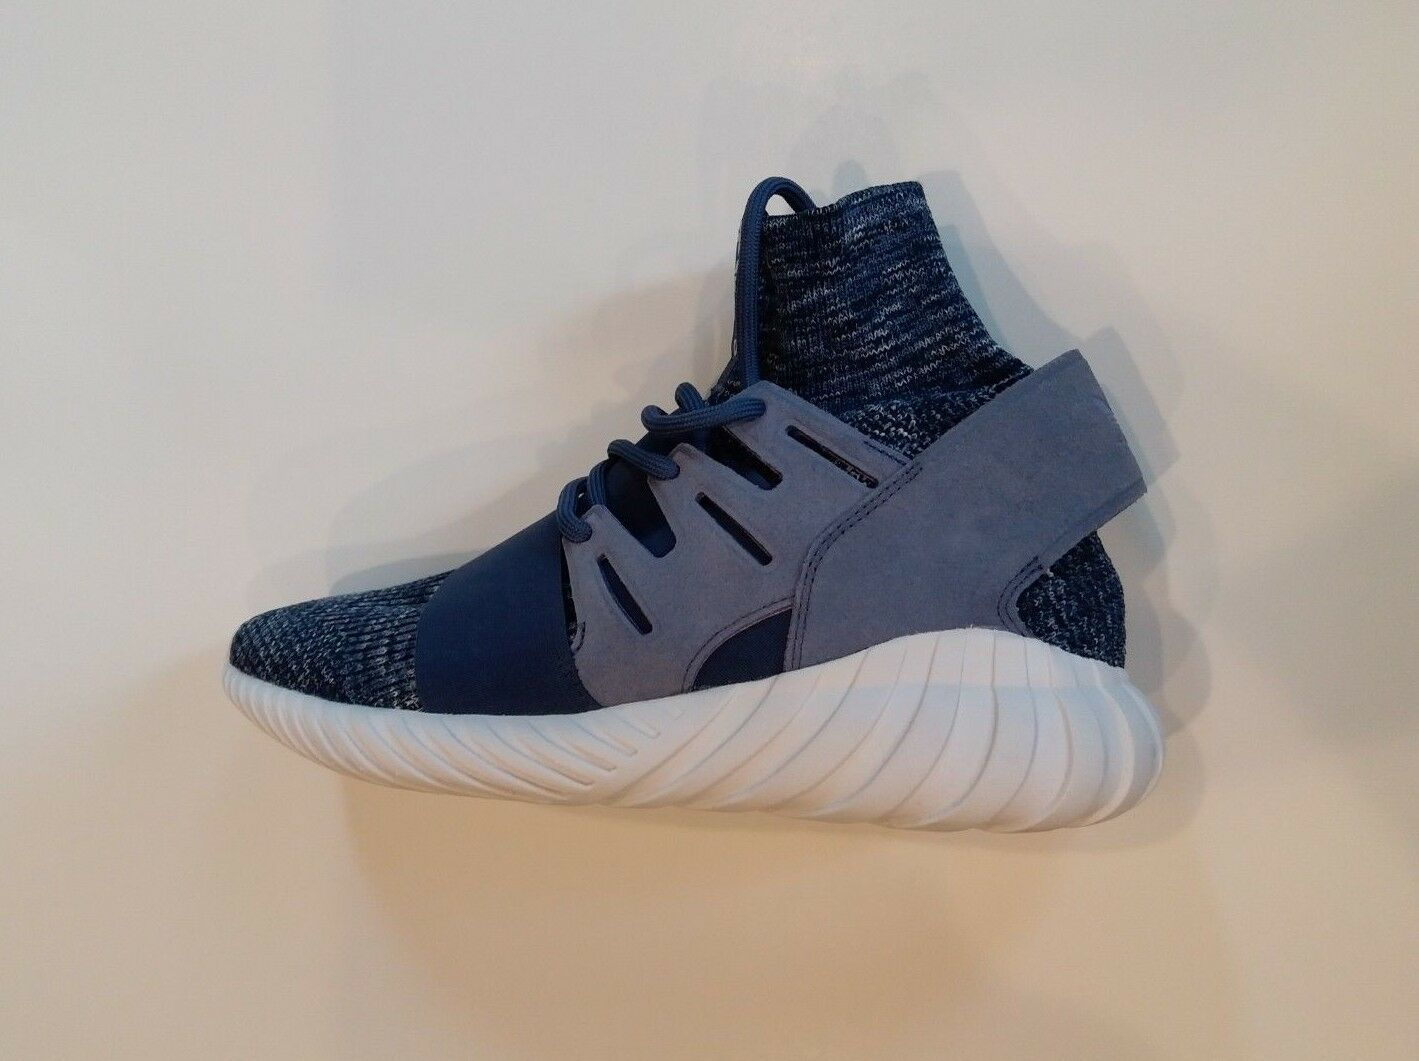 Men's    Adidas Tubular Doom  Primeknit bluee Glow   BB2393 shoes Size us 11-M 2a931a